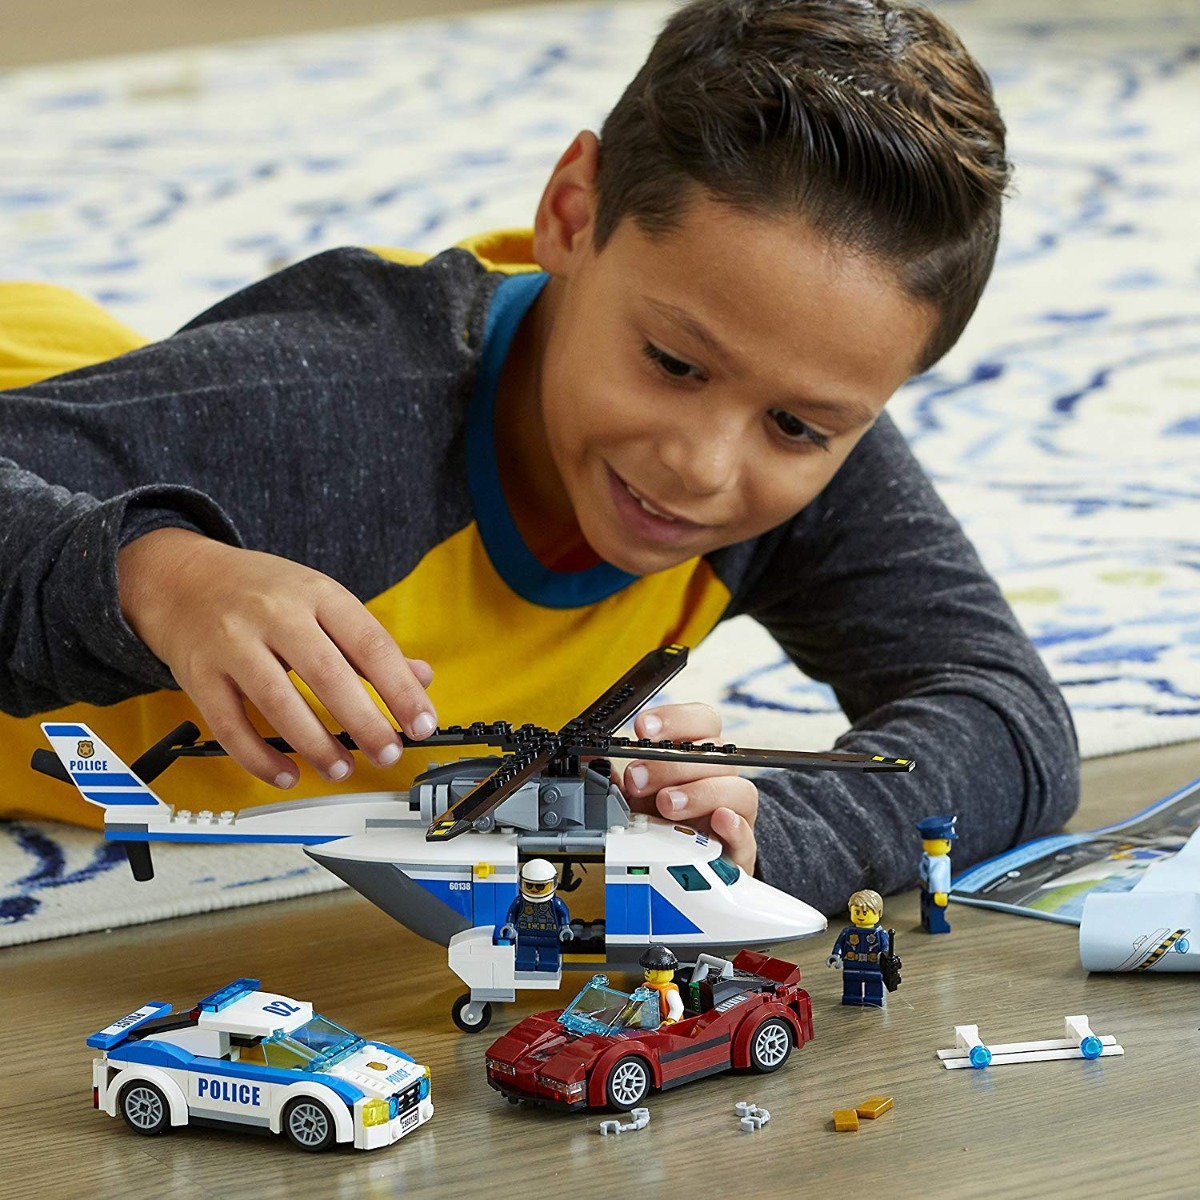 Police Helicopter And Car Lego City 60138 High Speed Chase